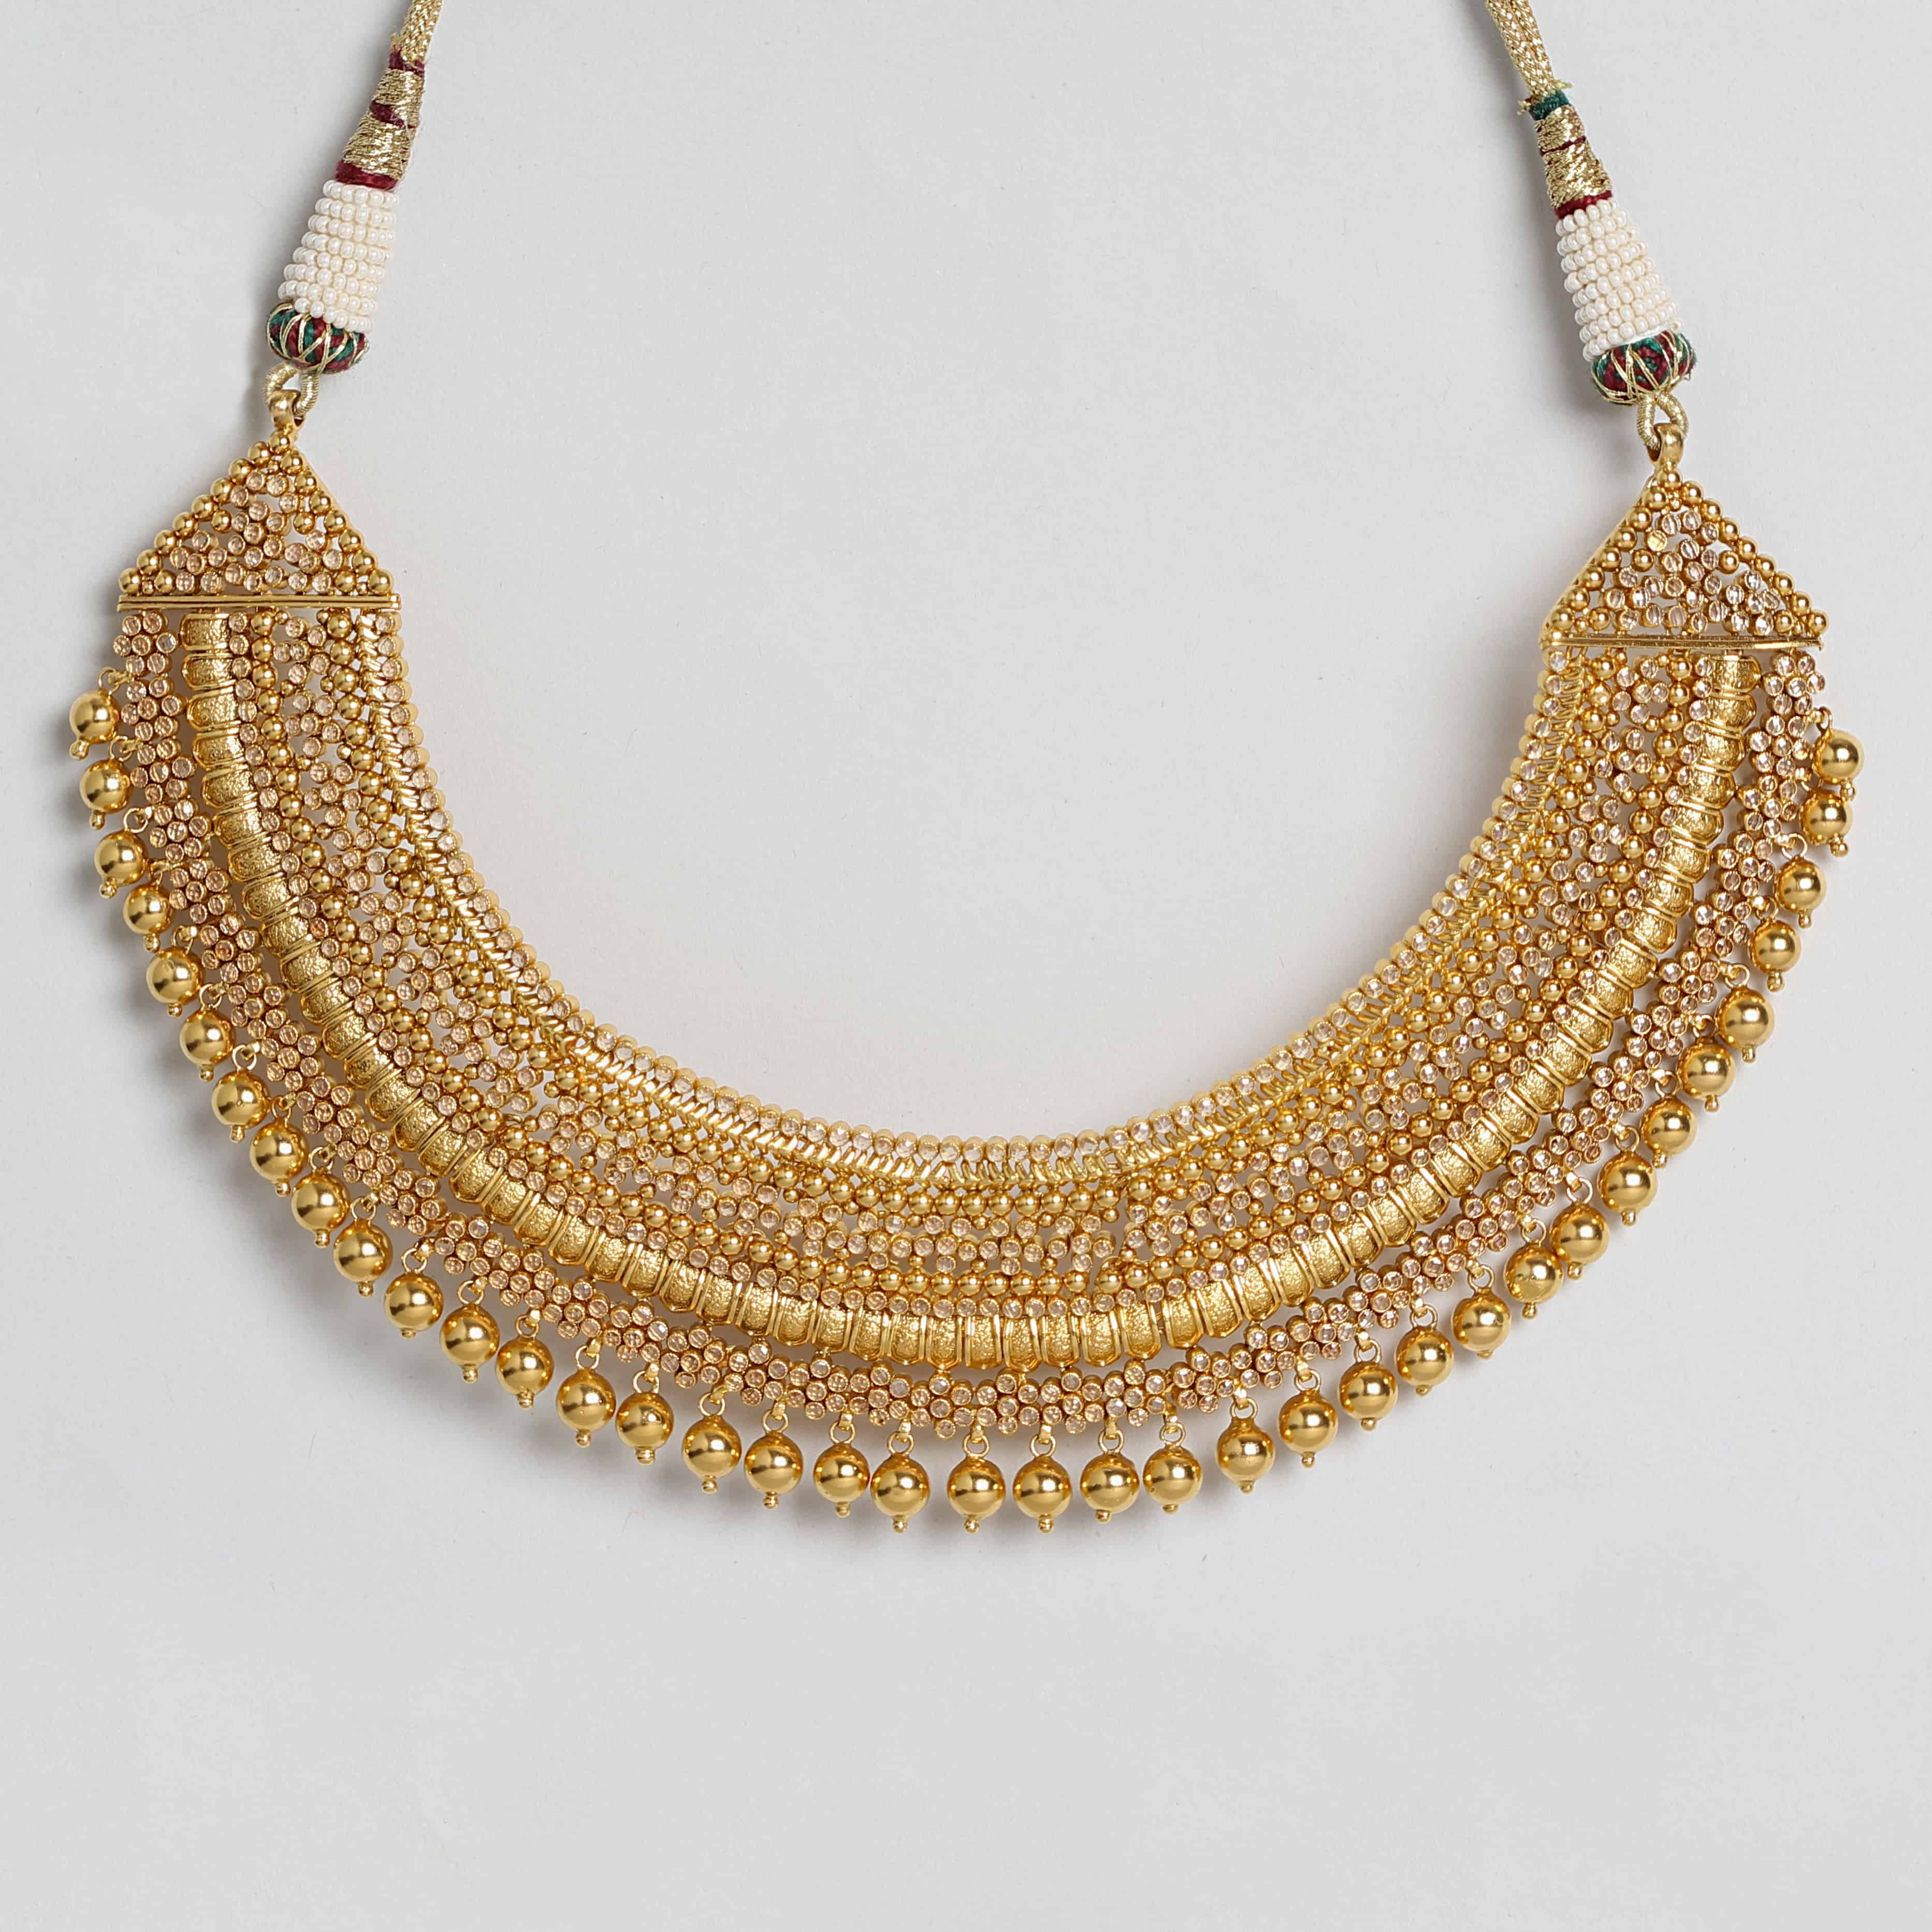 26144 - 22ct Polki Necklace